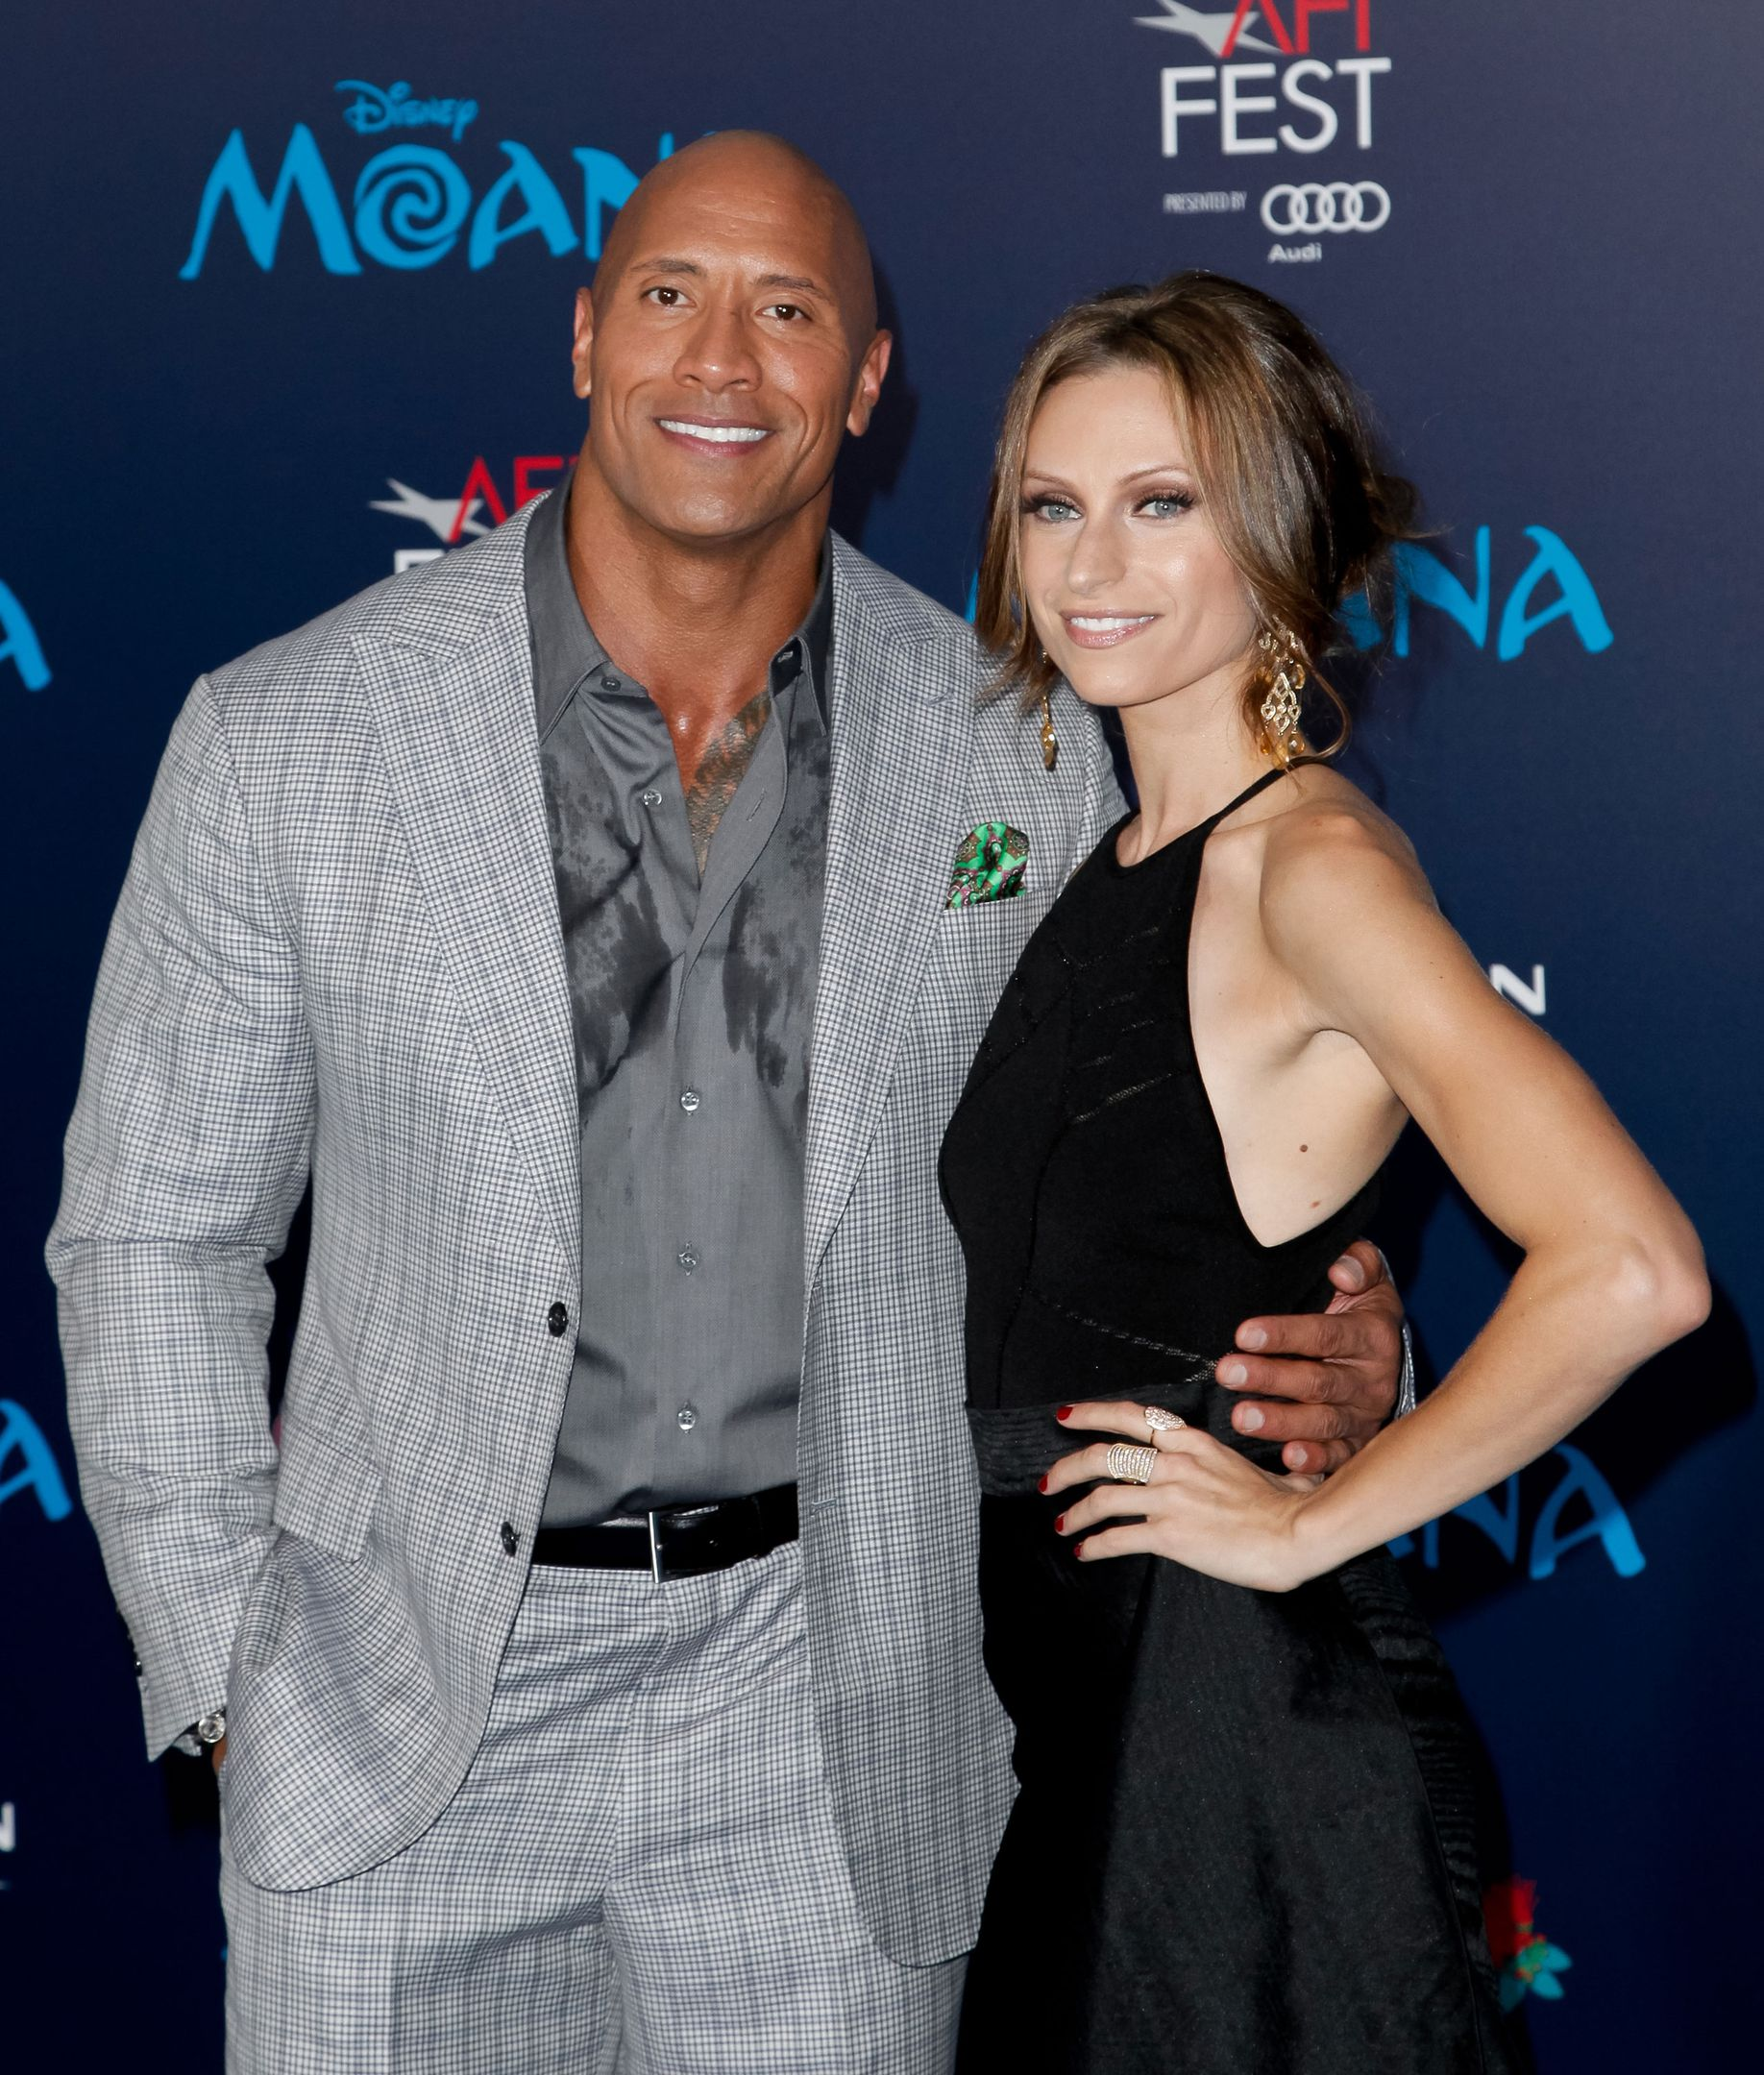 Dwayne 'The Rock' Johnson and Girlfriend Lauren Hashian Announce Pregnancy